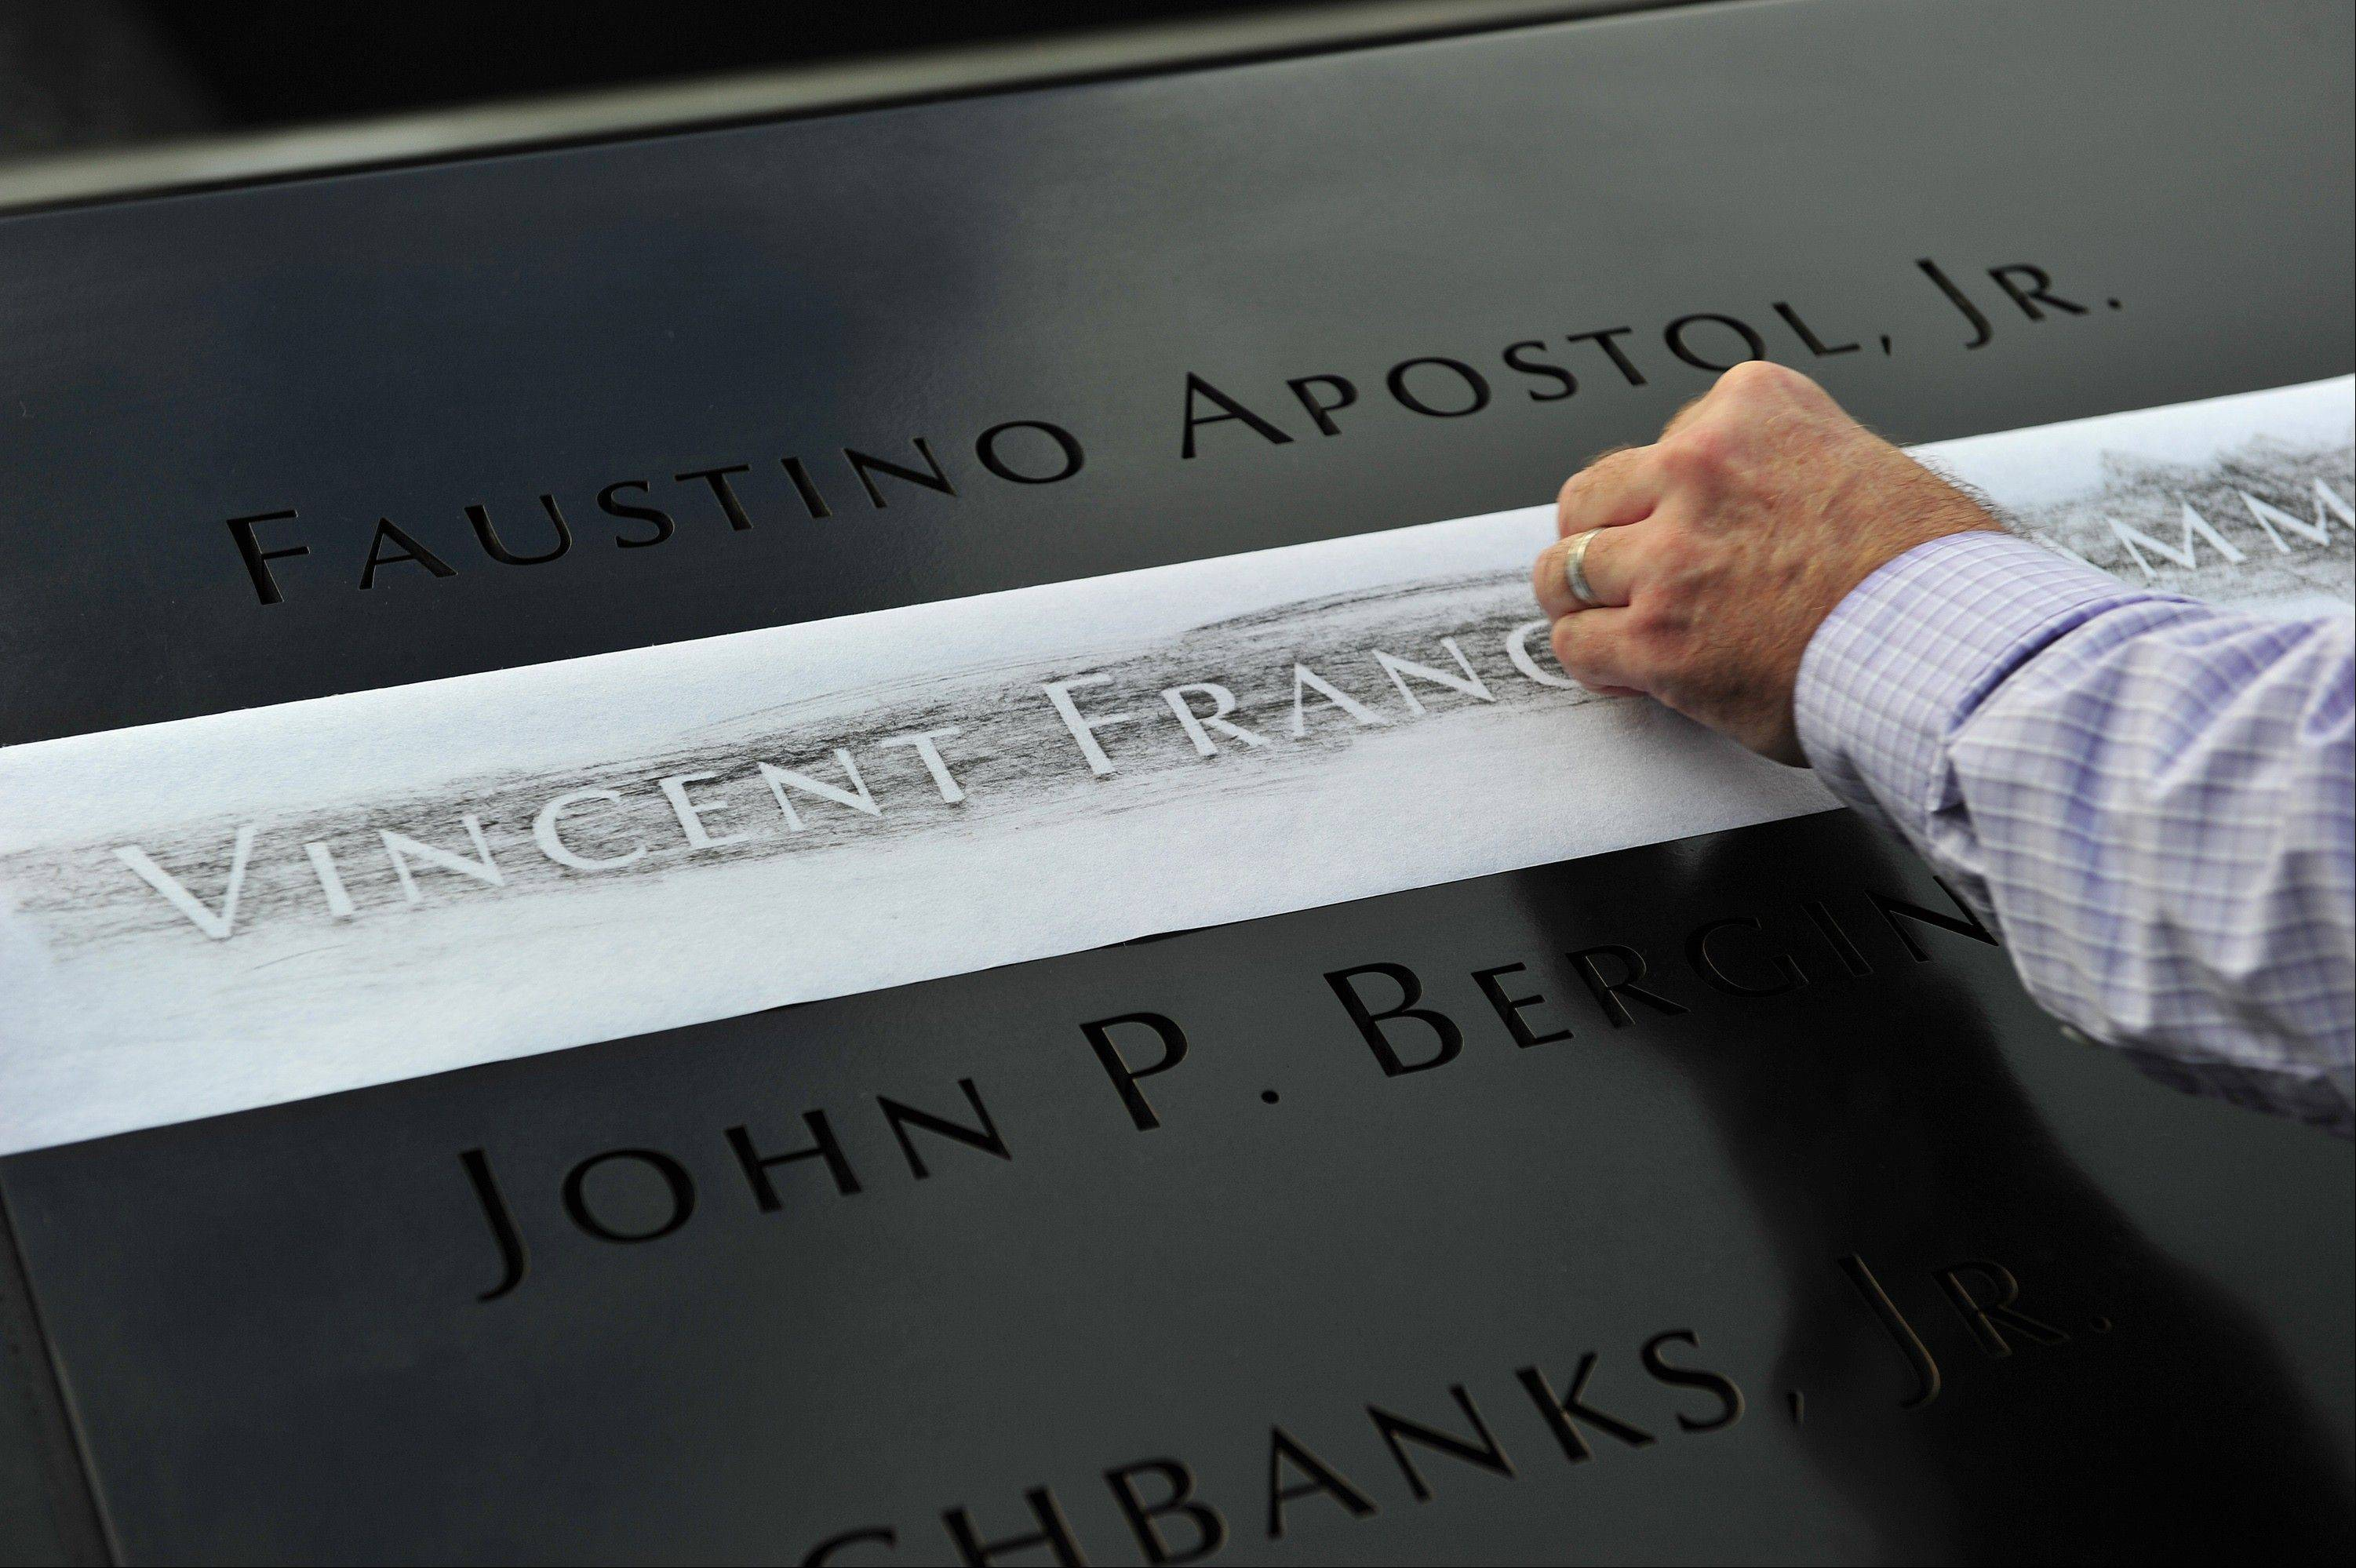 Ron Joy makes a rubbing of his friend's name, New York Fire Department firefighter Capt. Vincent Giammona, at the South reflecting pool at the 9/11 Memorial on Wednesday, Sept. 11, 2013, during ceremonies marking the 12th anniversary of the Sept. 11 terrorist attacks in New York.